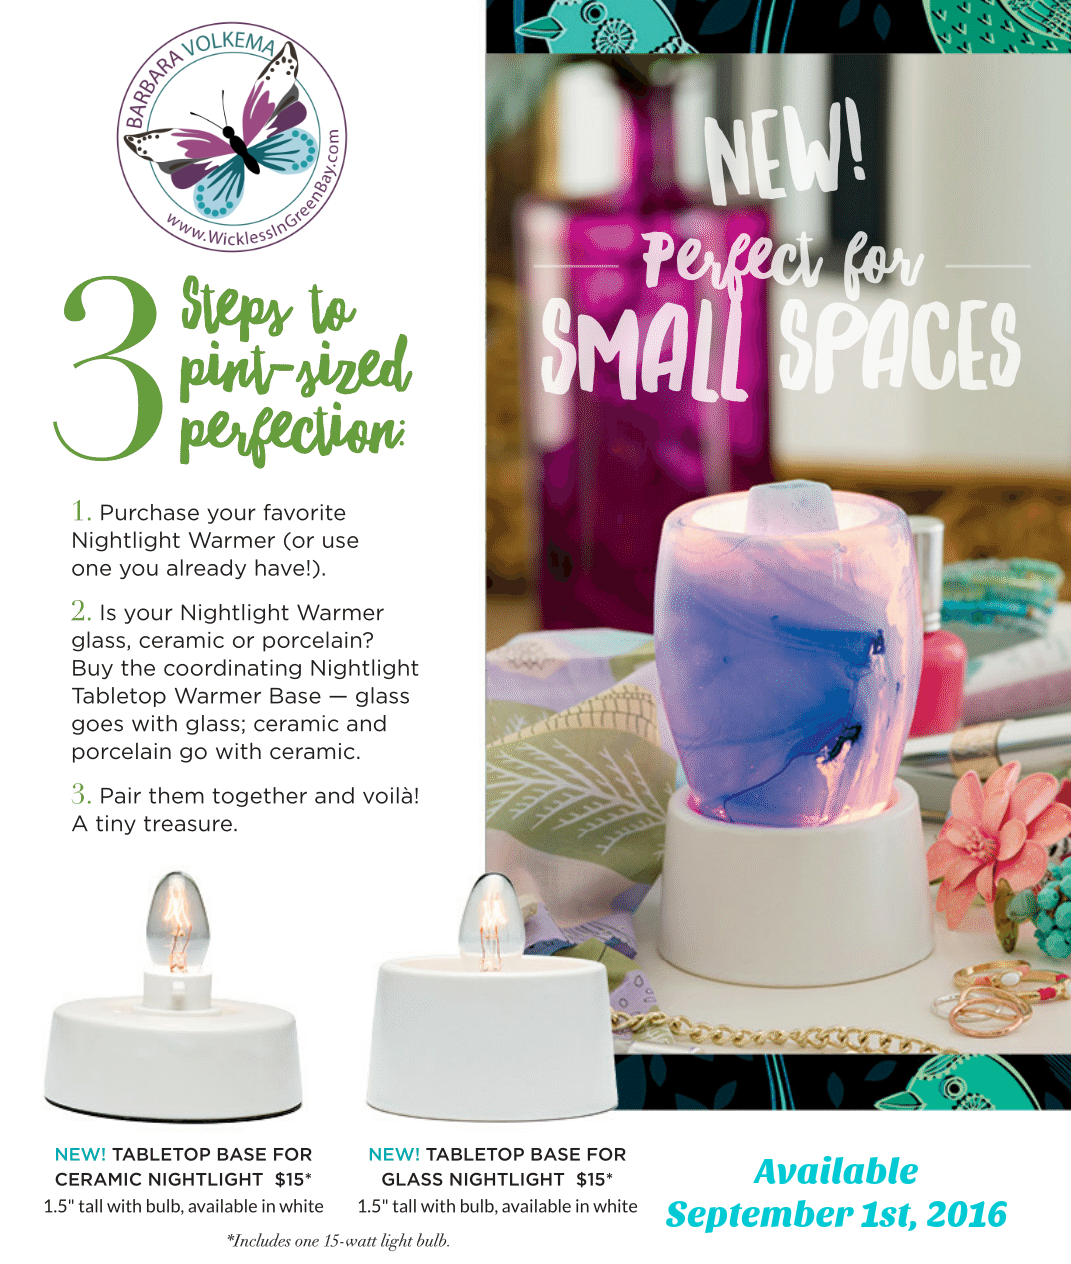 Attractive Less Is Best With Our New Scentsy Tabletop Nightlight Bases!